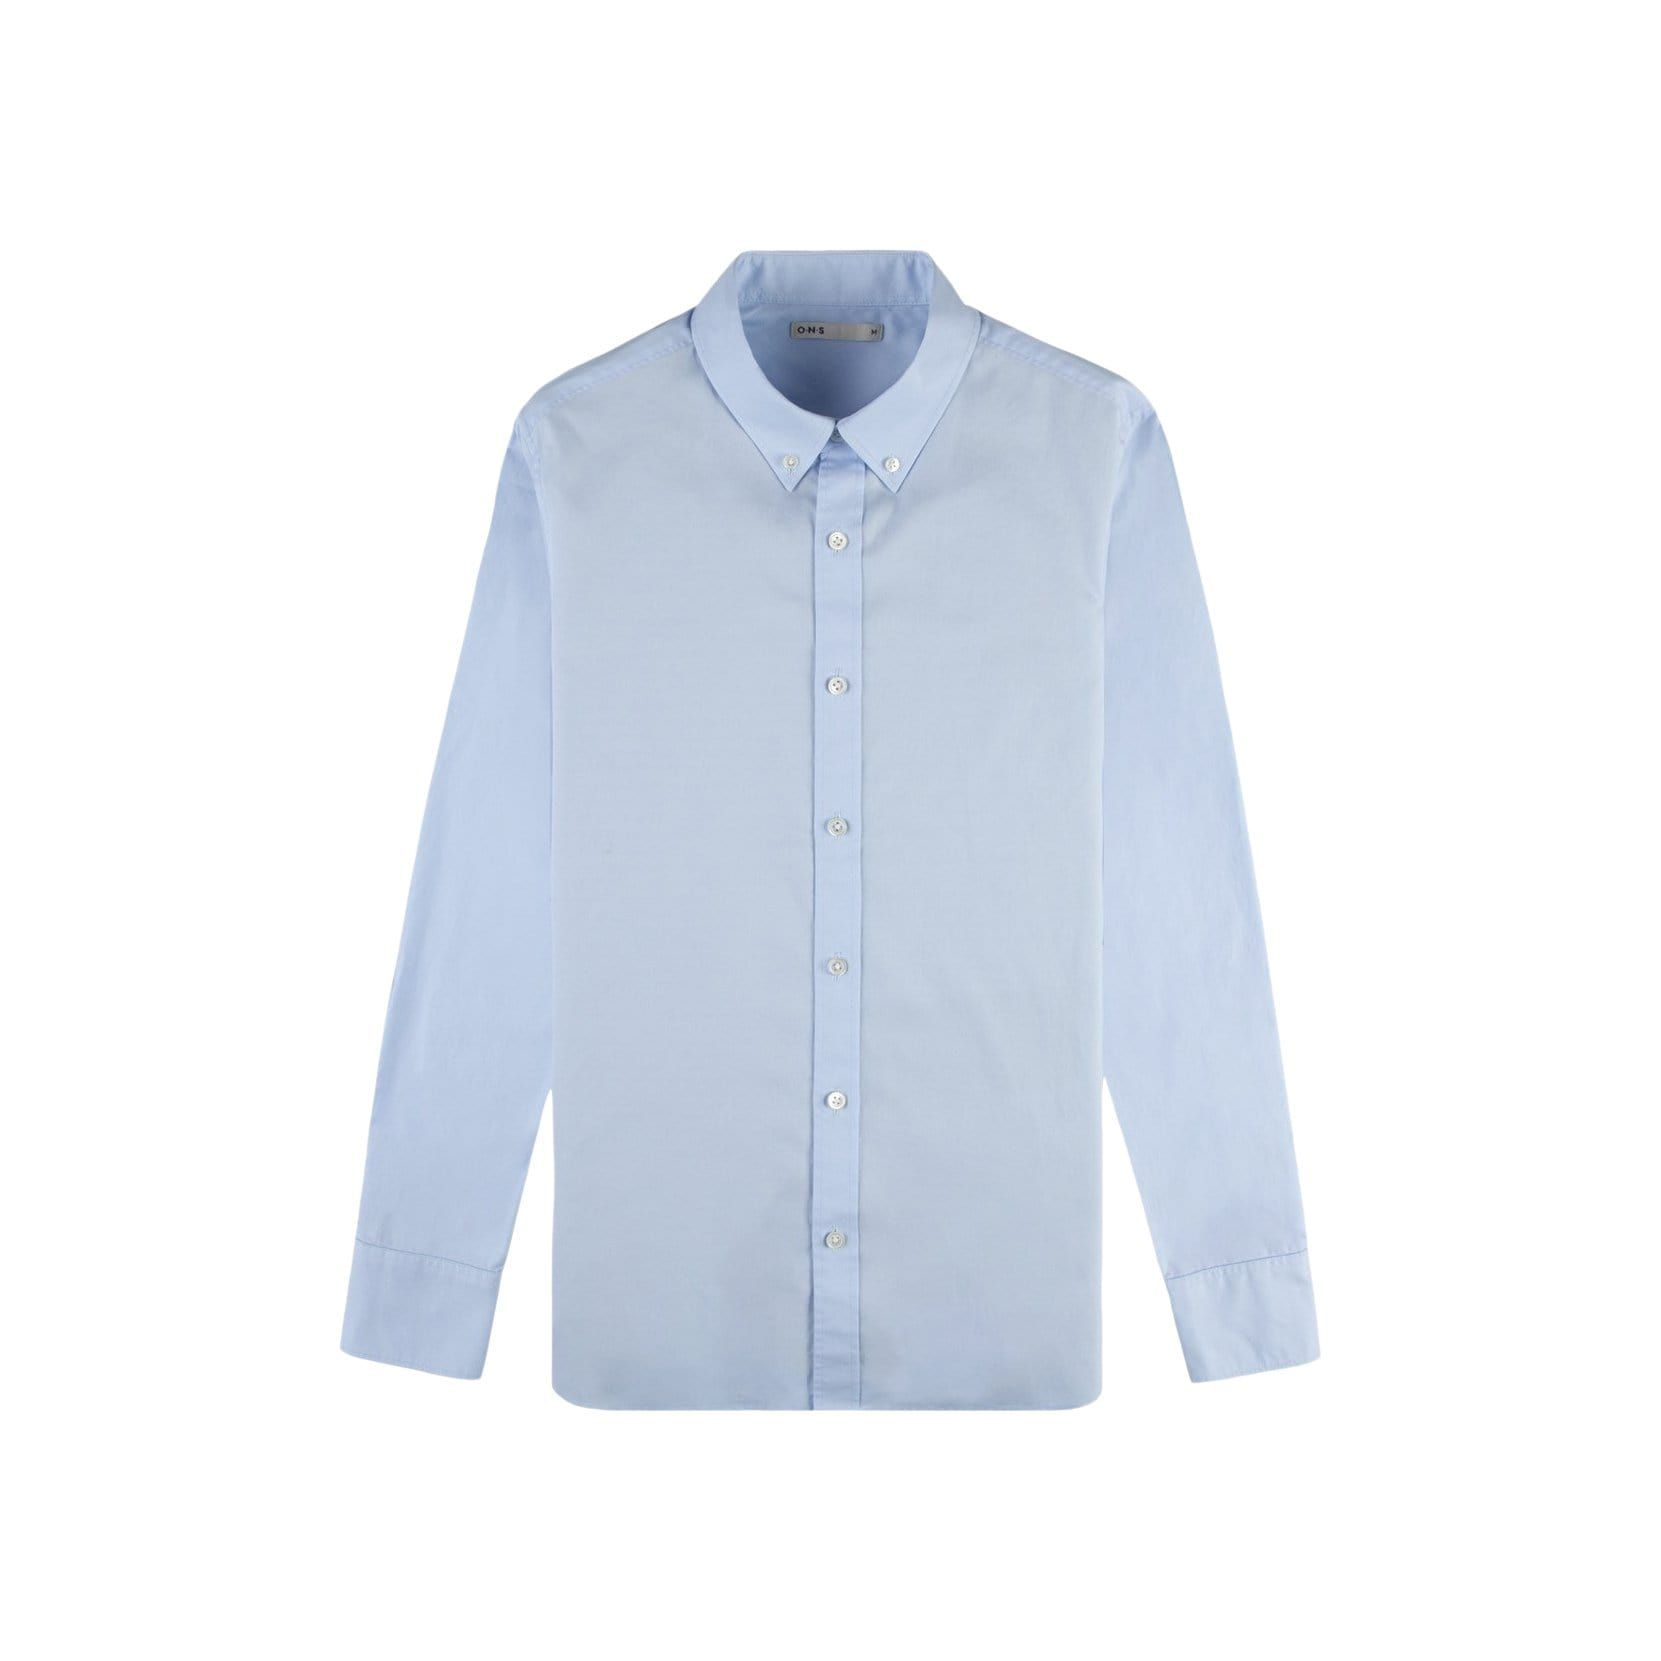 Pinpoint Oxford is made from finer yarn and has a tighter weave than plain Oxford cloth which gives this shirt greater durability that one can expect to find with O.N.S. It's tailored fit is slim, but not too slim, and comes prewashed for additional softness. This timeless shirt is the ultimate layering piece to add to your closet. Tailored Fit Materials: 100% Cotton Oxford Care Instructions: Garment wash cold and gentle with like colors